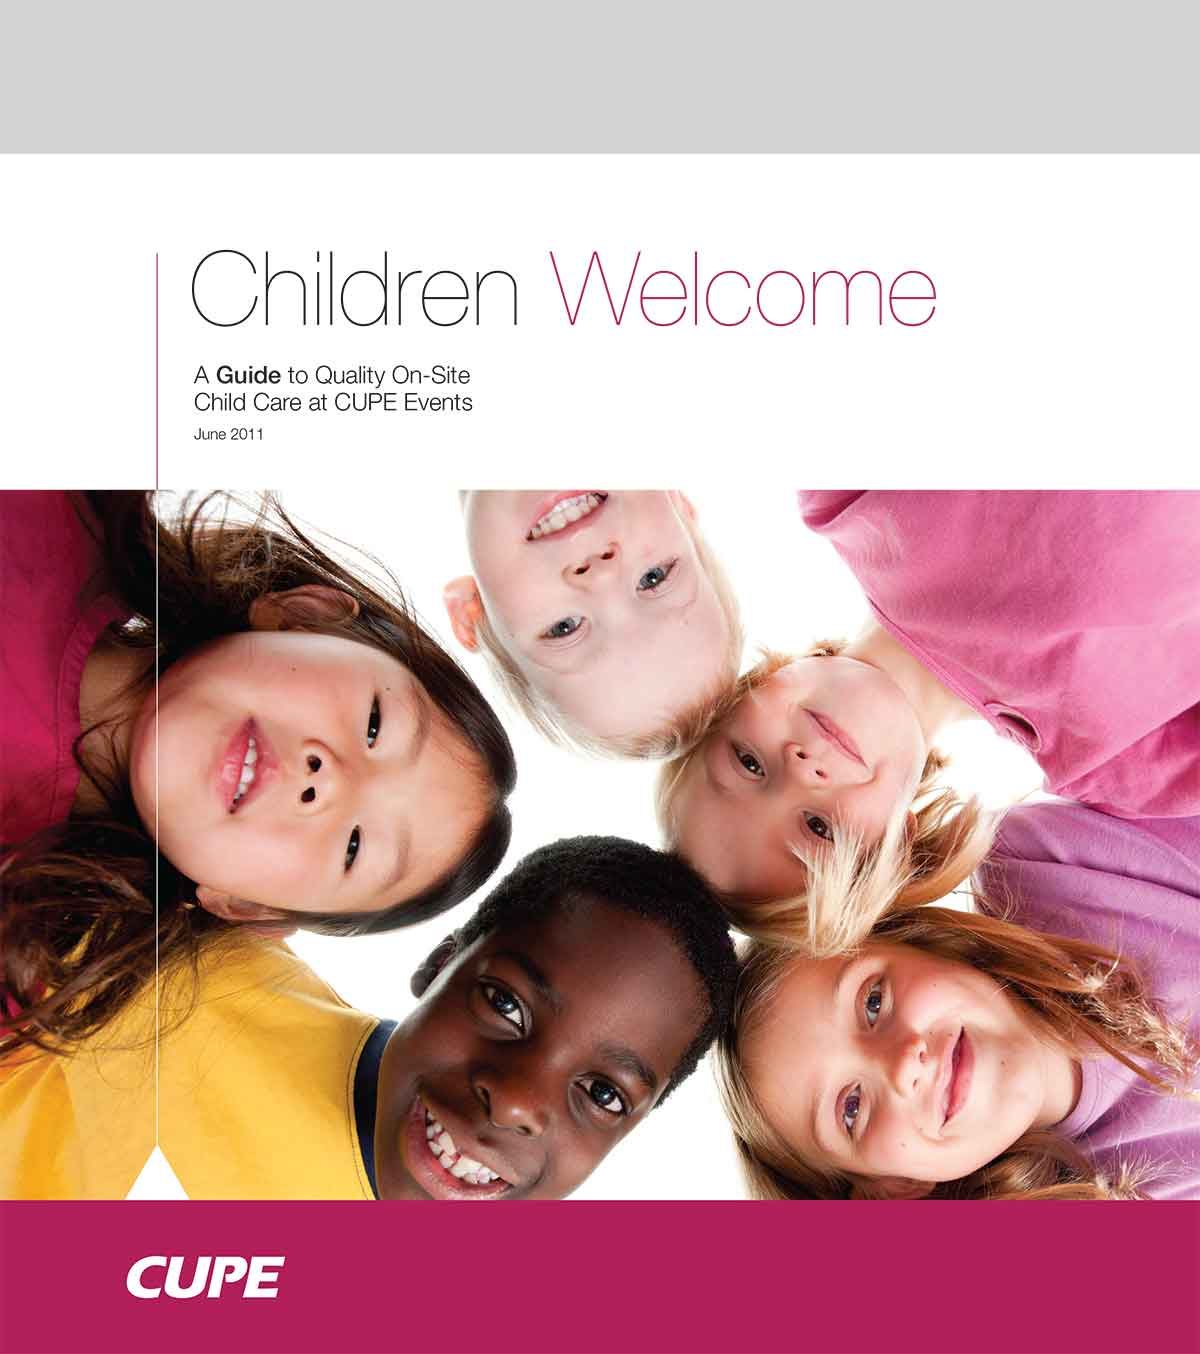 Children welcome guide